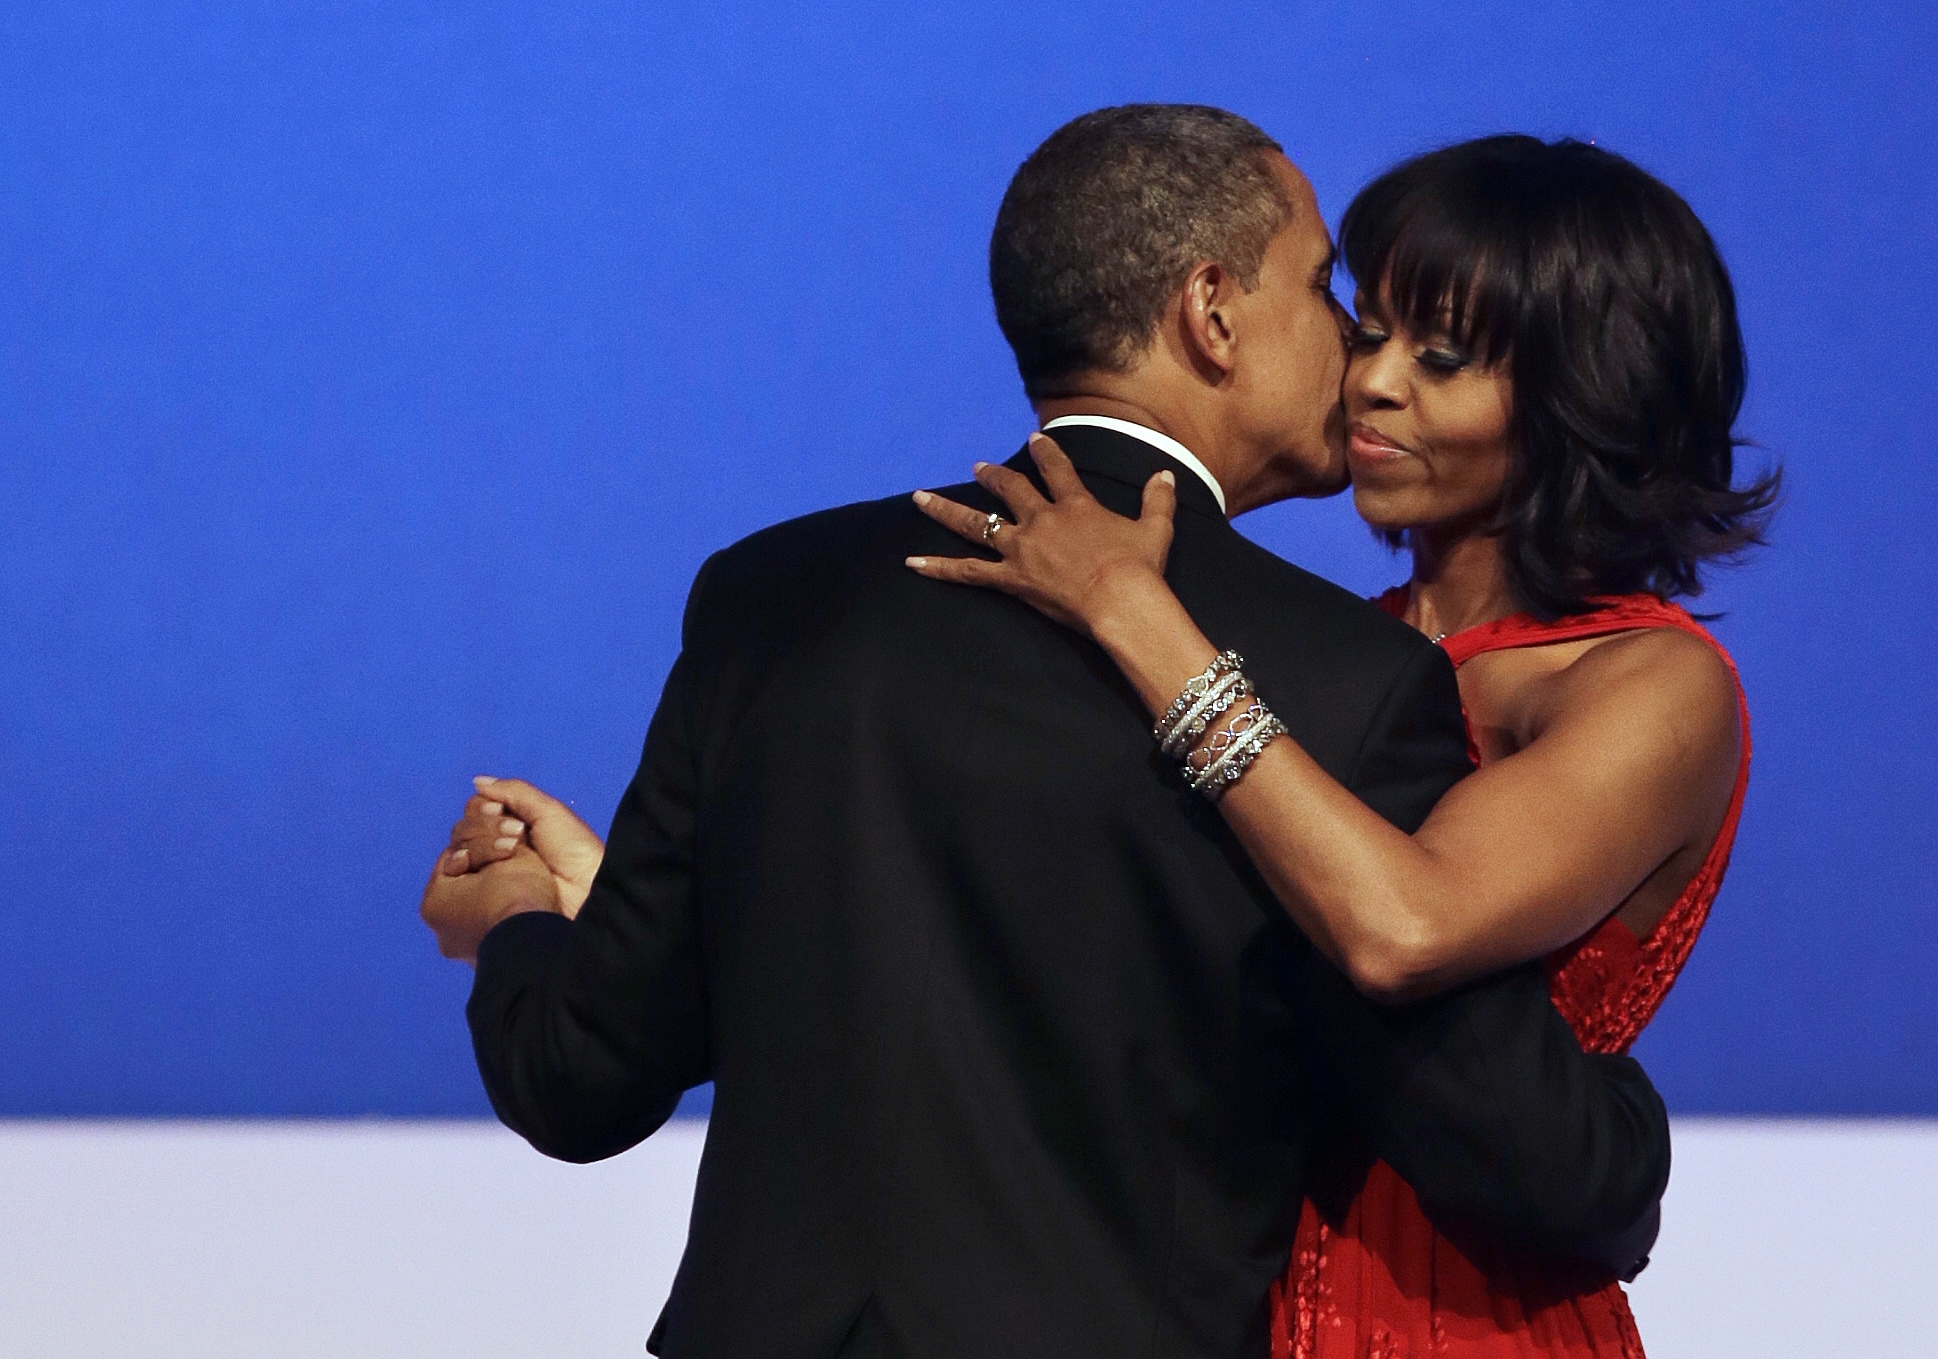 Michelle Obama and the president will be dancing again at a White House gala Jan. 18 celebrating the 50th birthday of the first lady. Her birthday is actually Jan. 17.